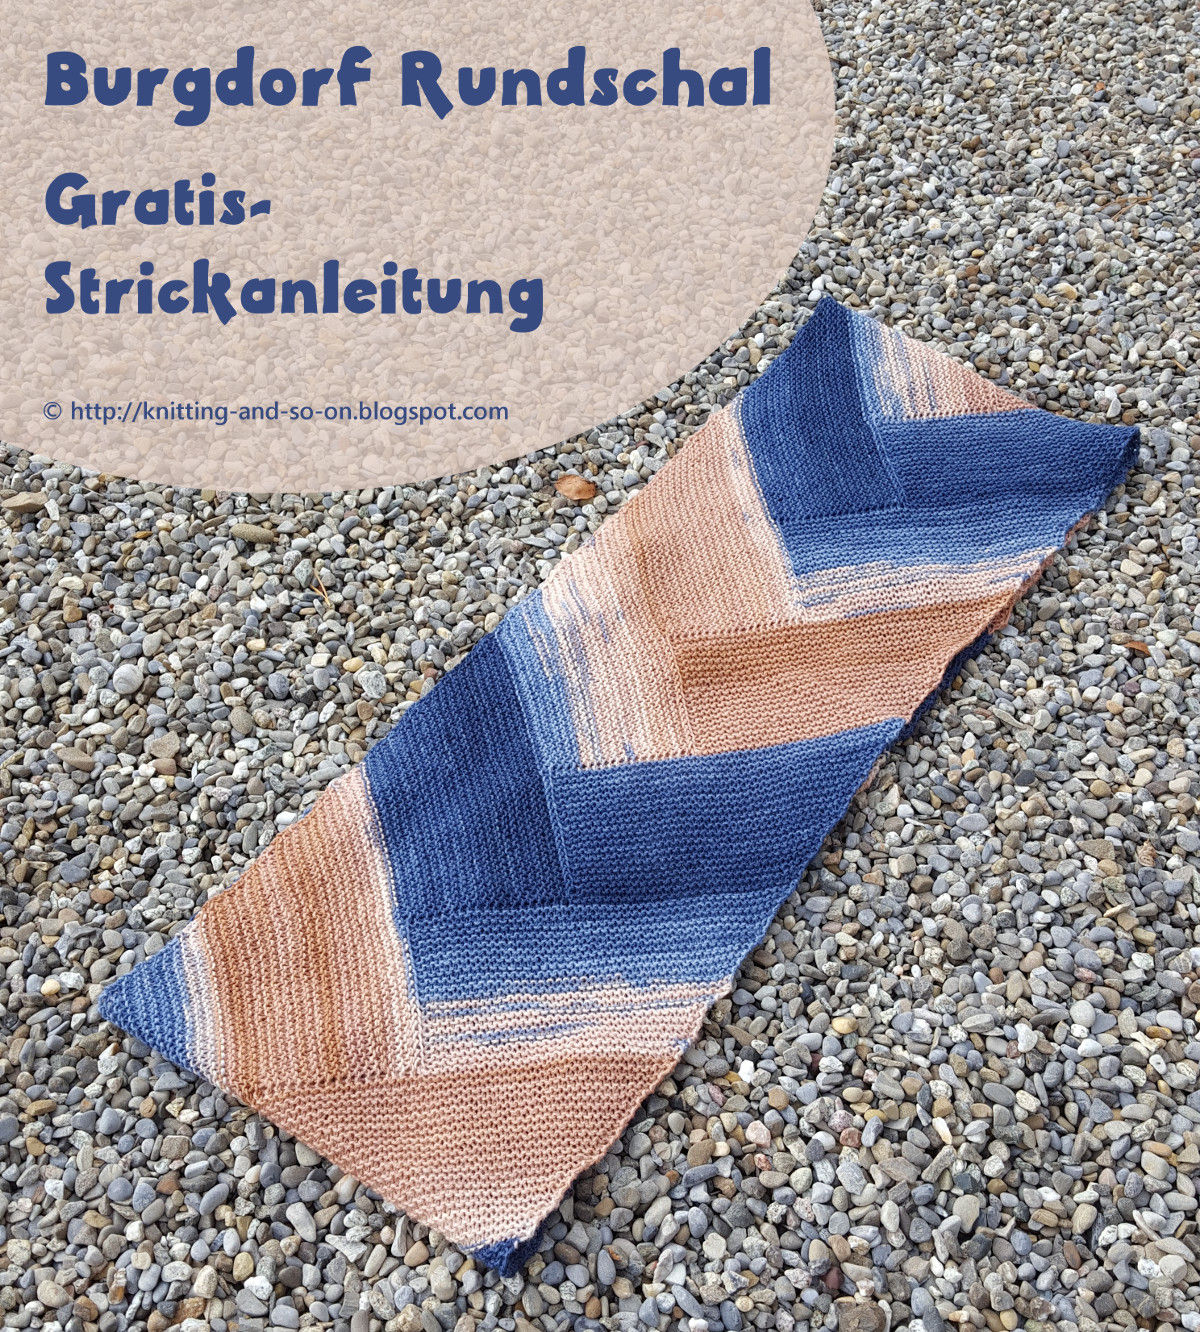 Knitting and so on: Burgdorf Rundschal